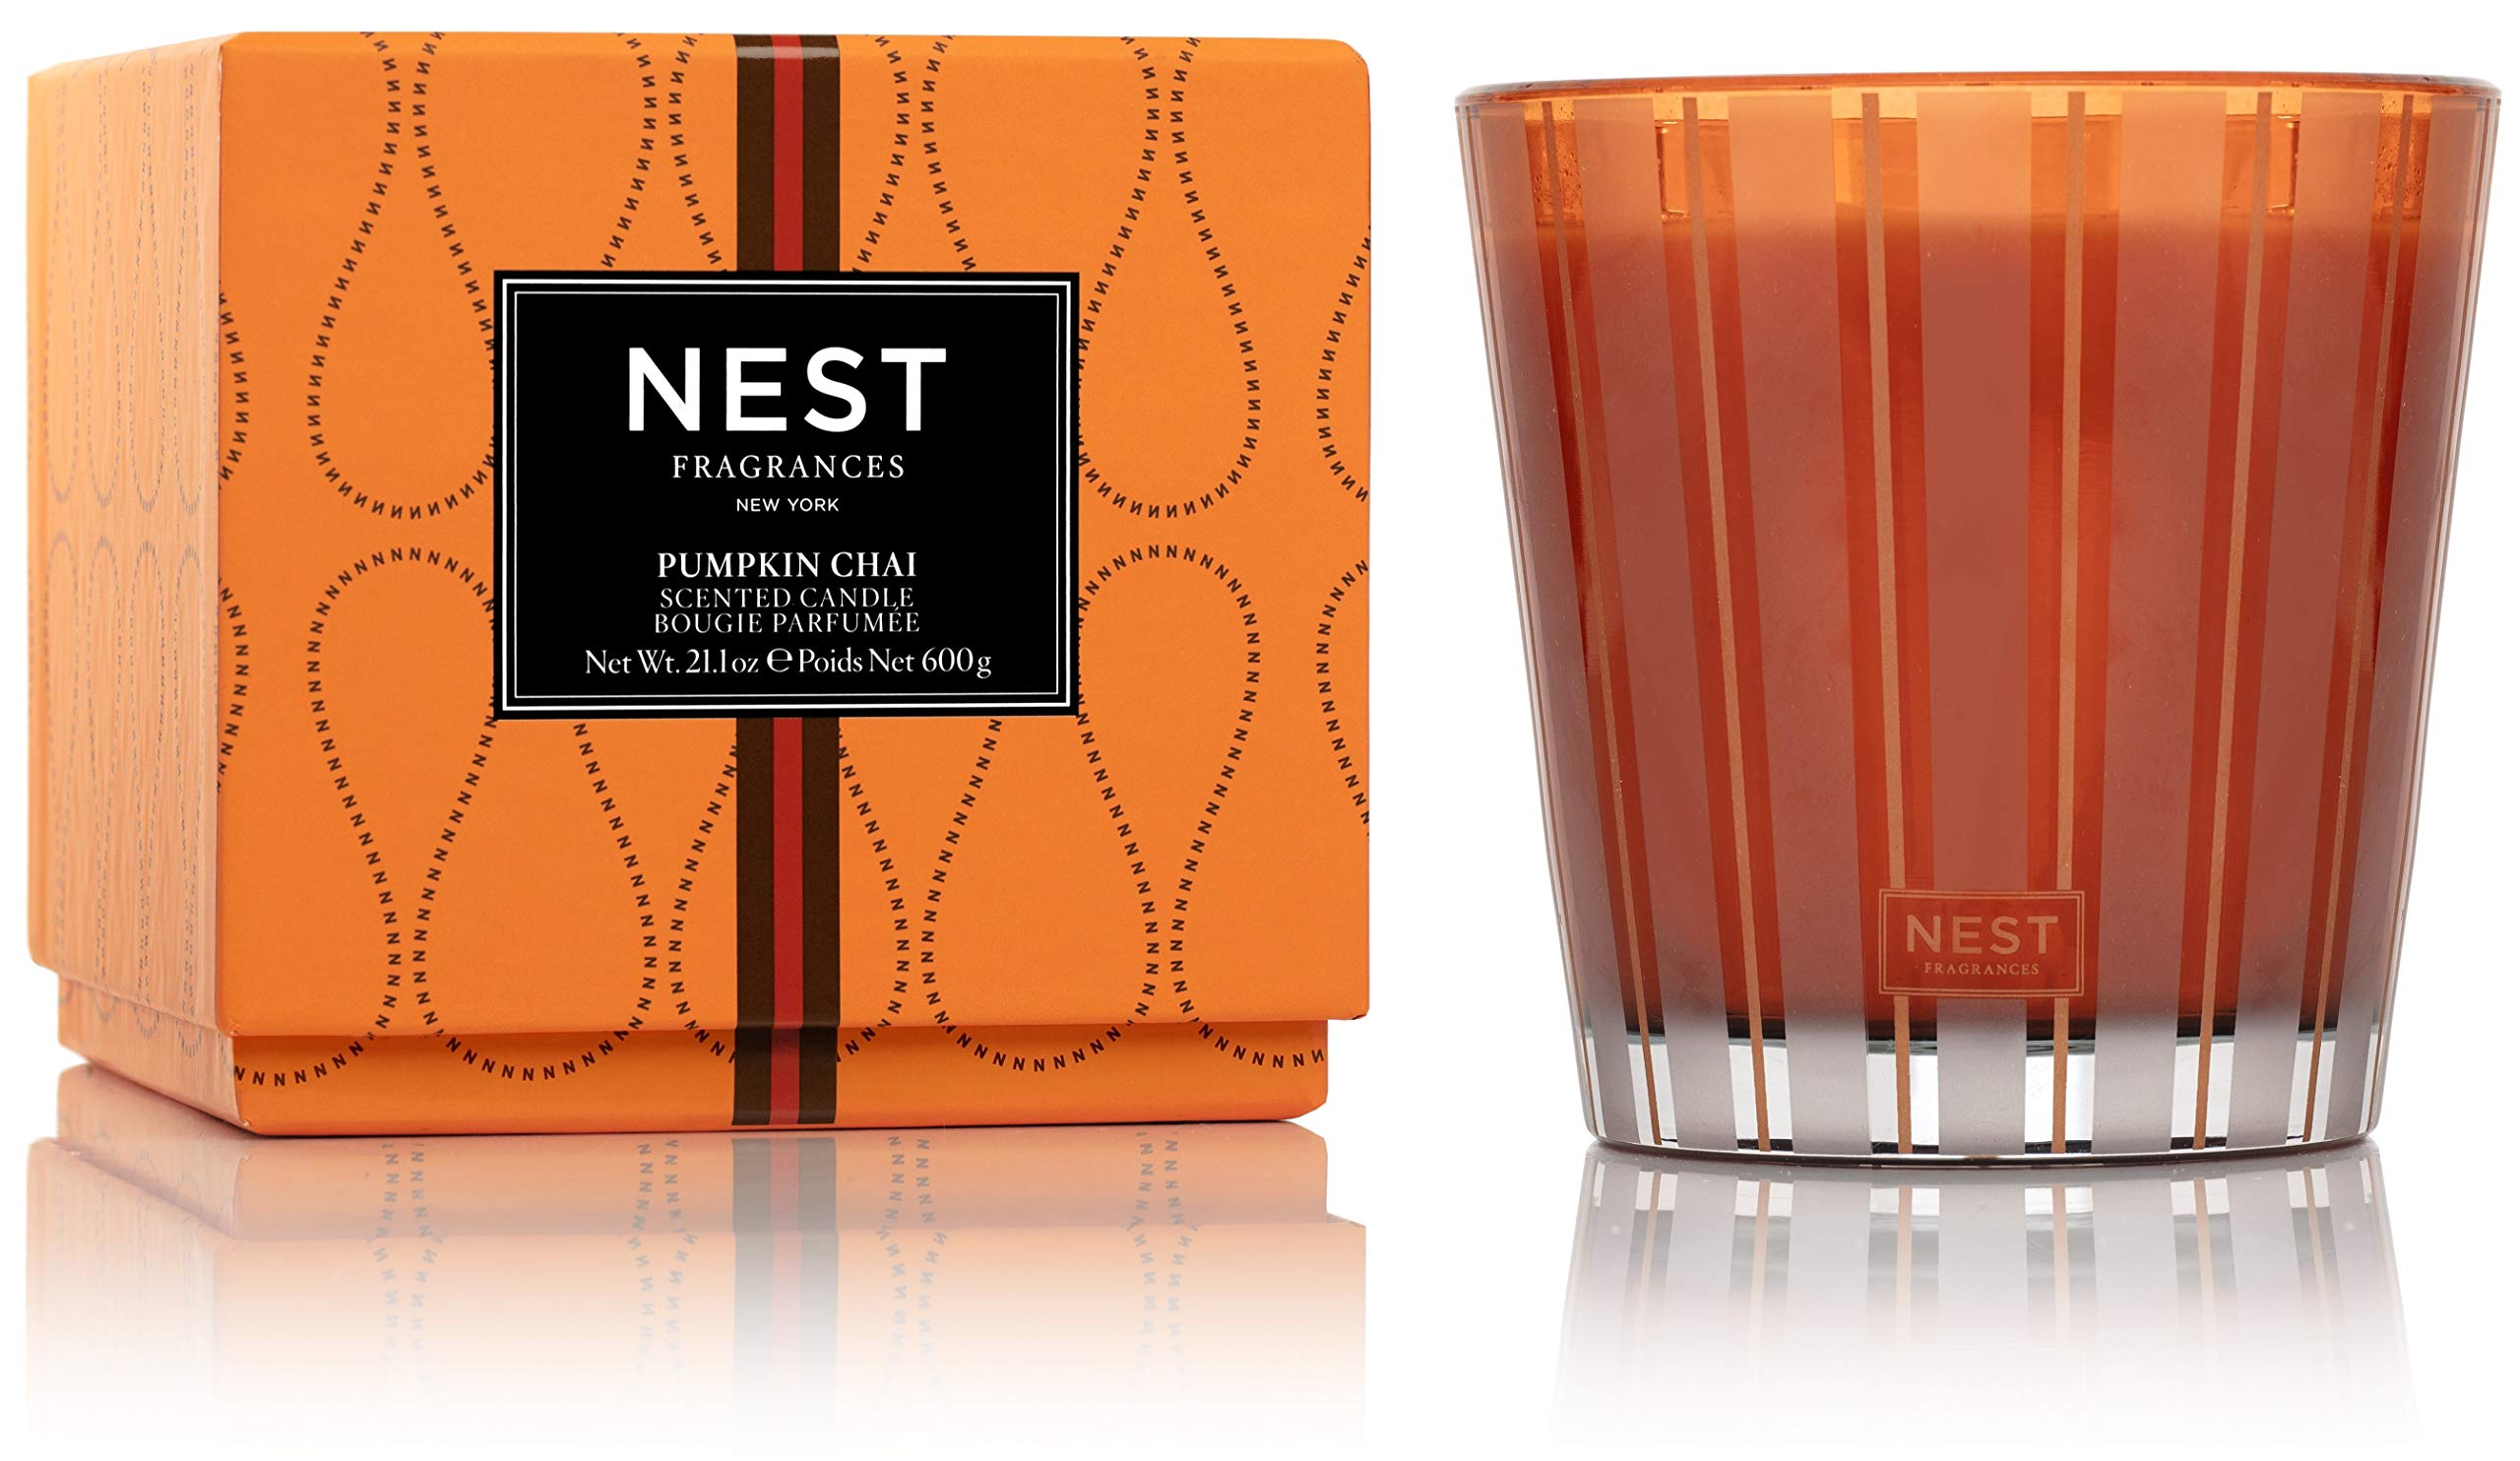 NEST Fragrances 3-Wick Candle- Pumpkin Chai, 21.2 oz